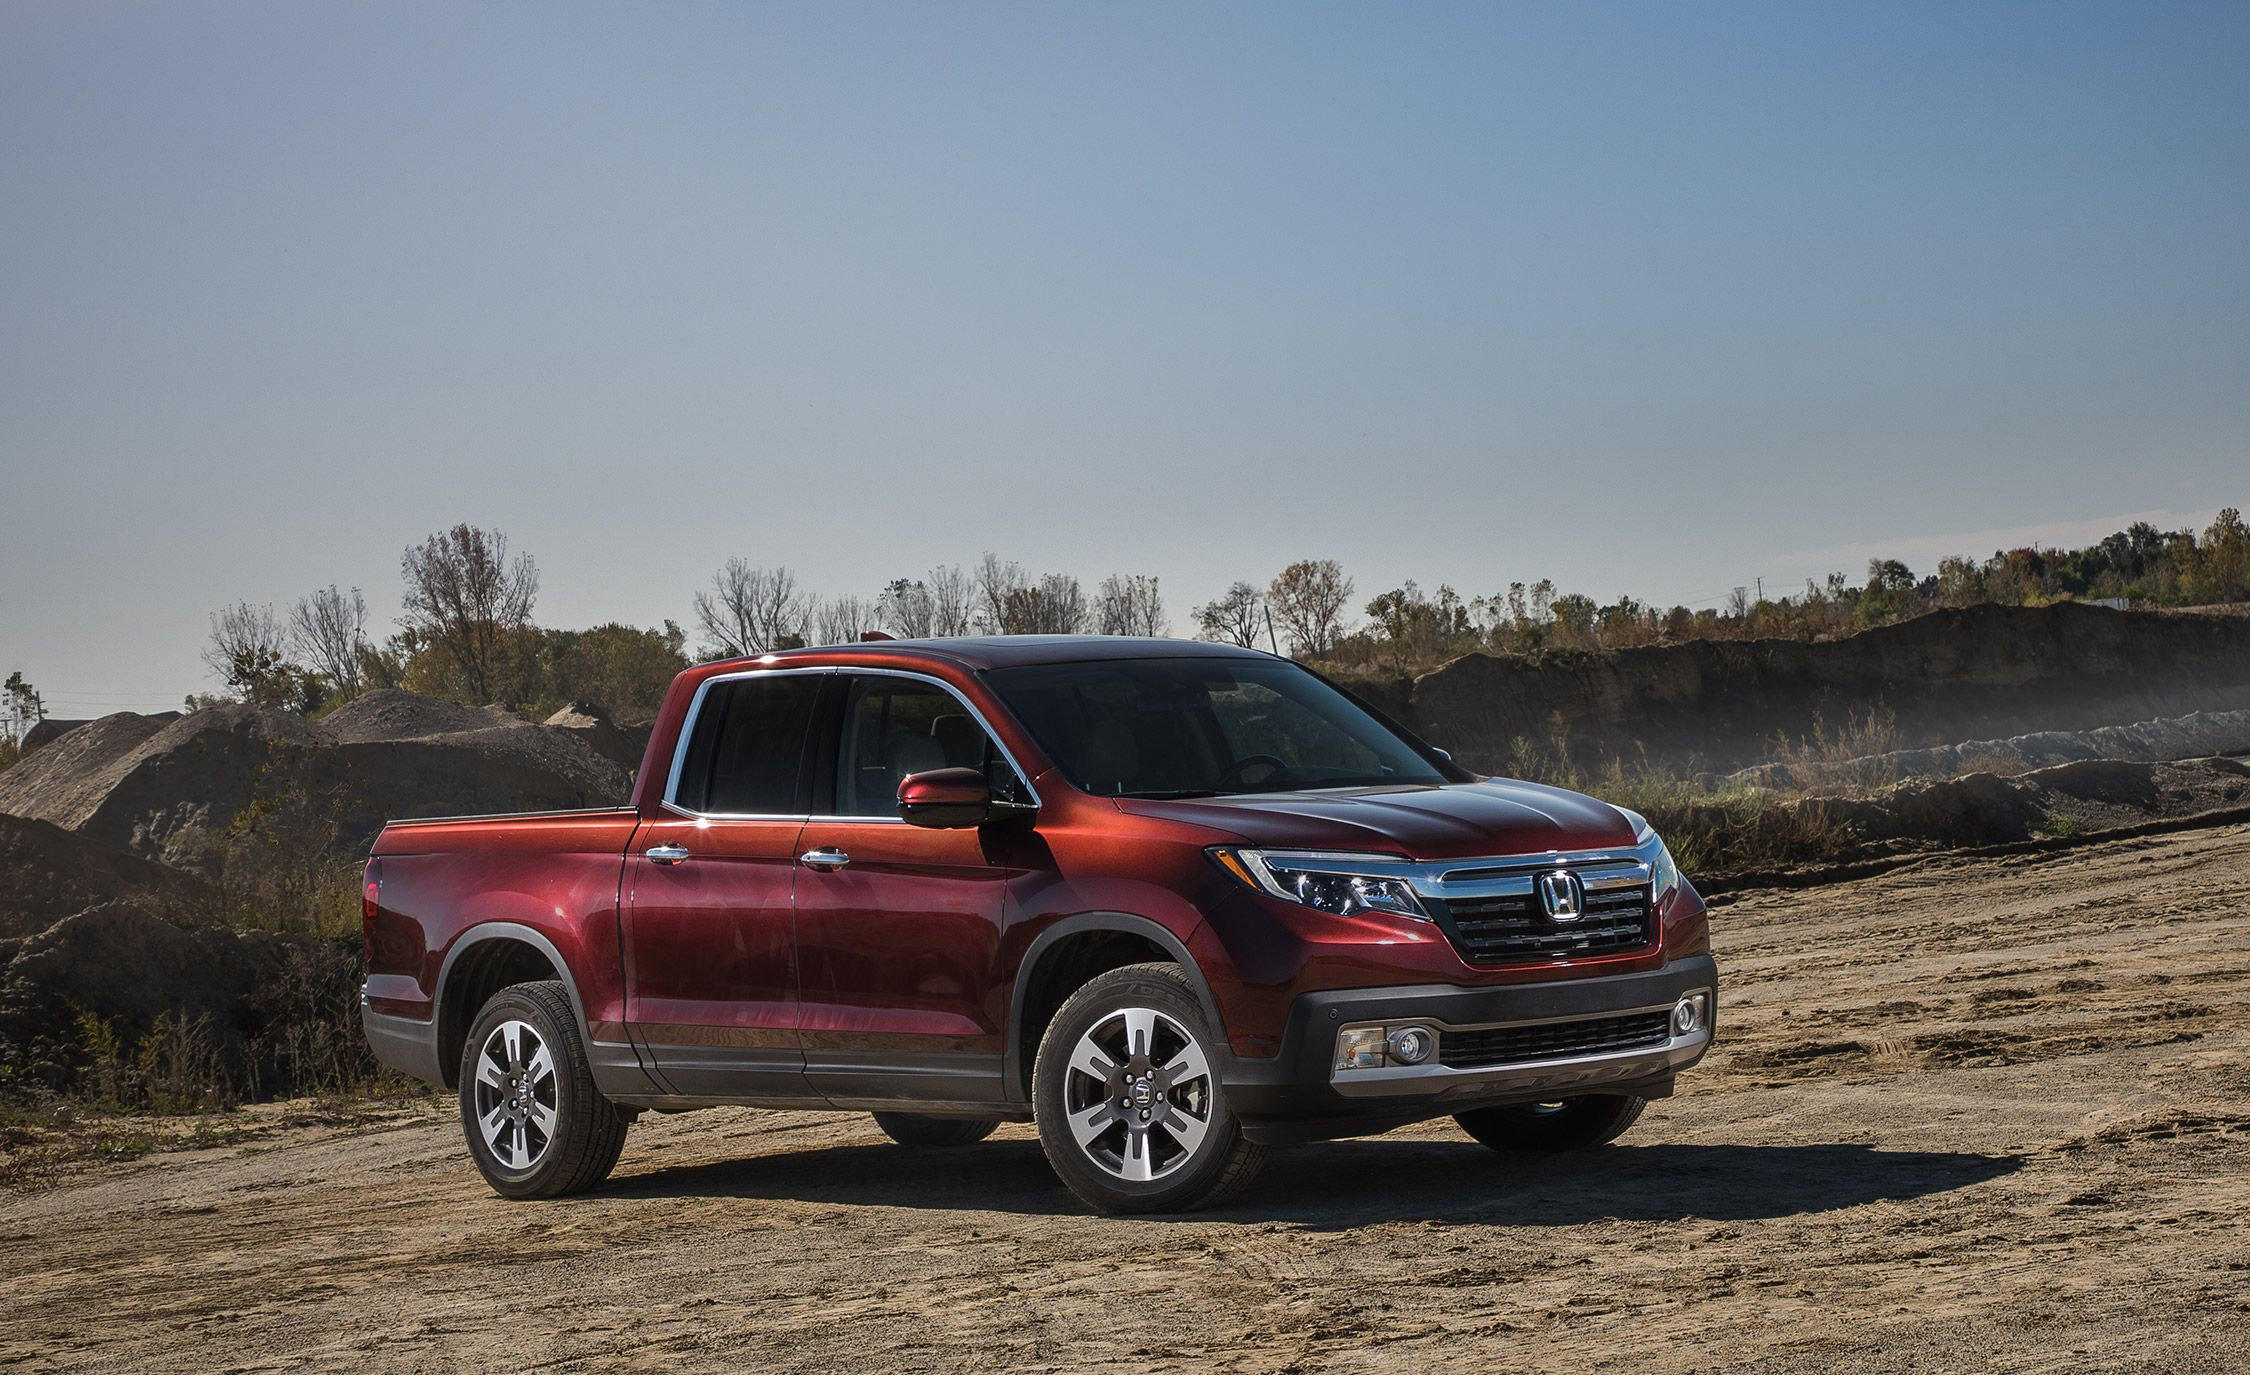 honda ridgeline best mid size pickup truck. Black Bedroom Furniture Sets. Home Design Ideas